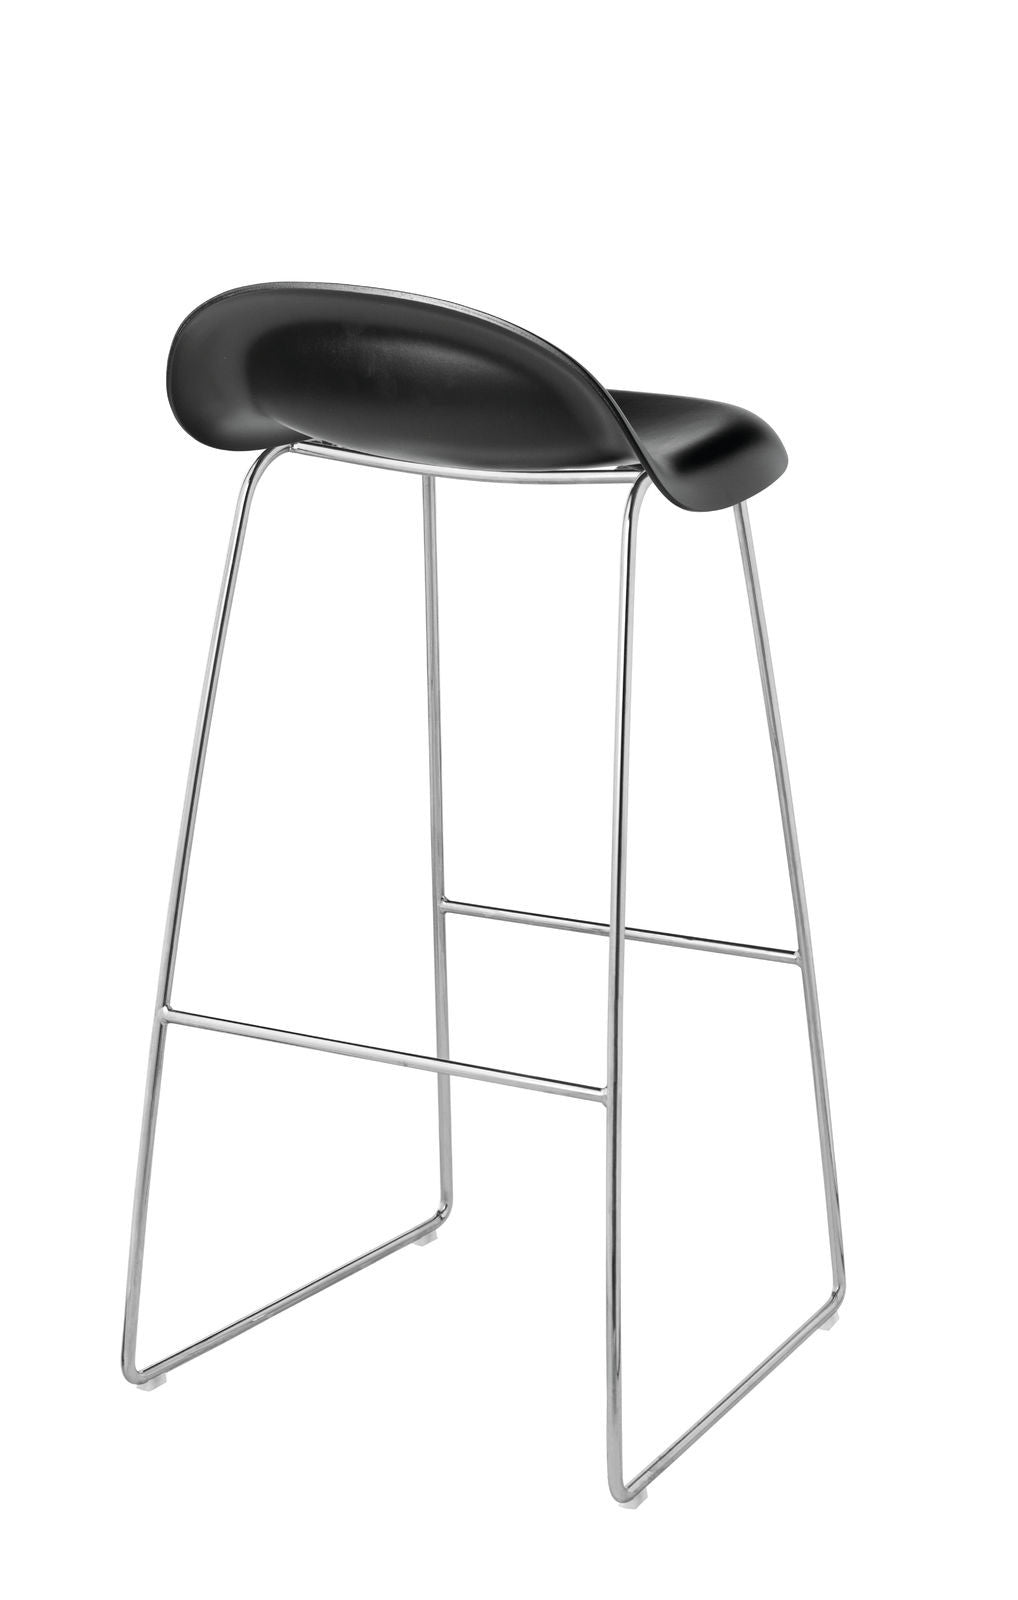 3D Bar Stool - Un-upholstered - 75 cm Sledge Crome base, Black Stained Beech shell fra GUBI